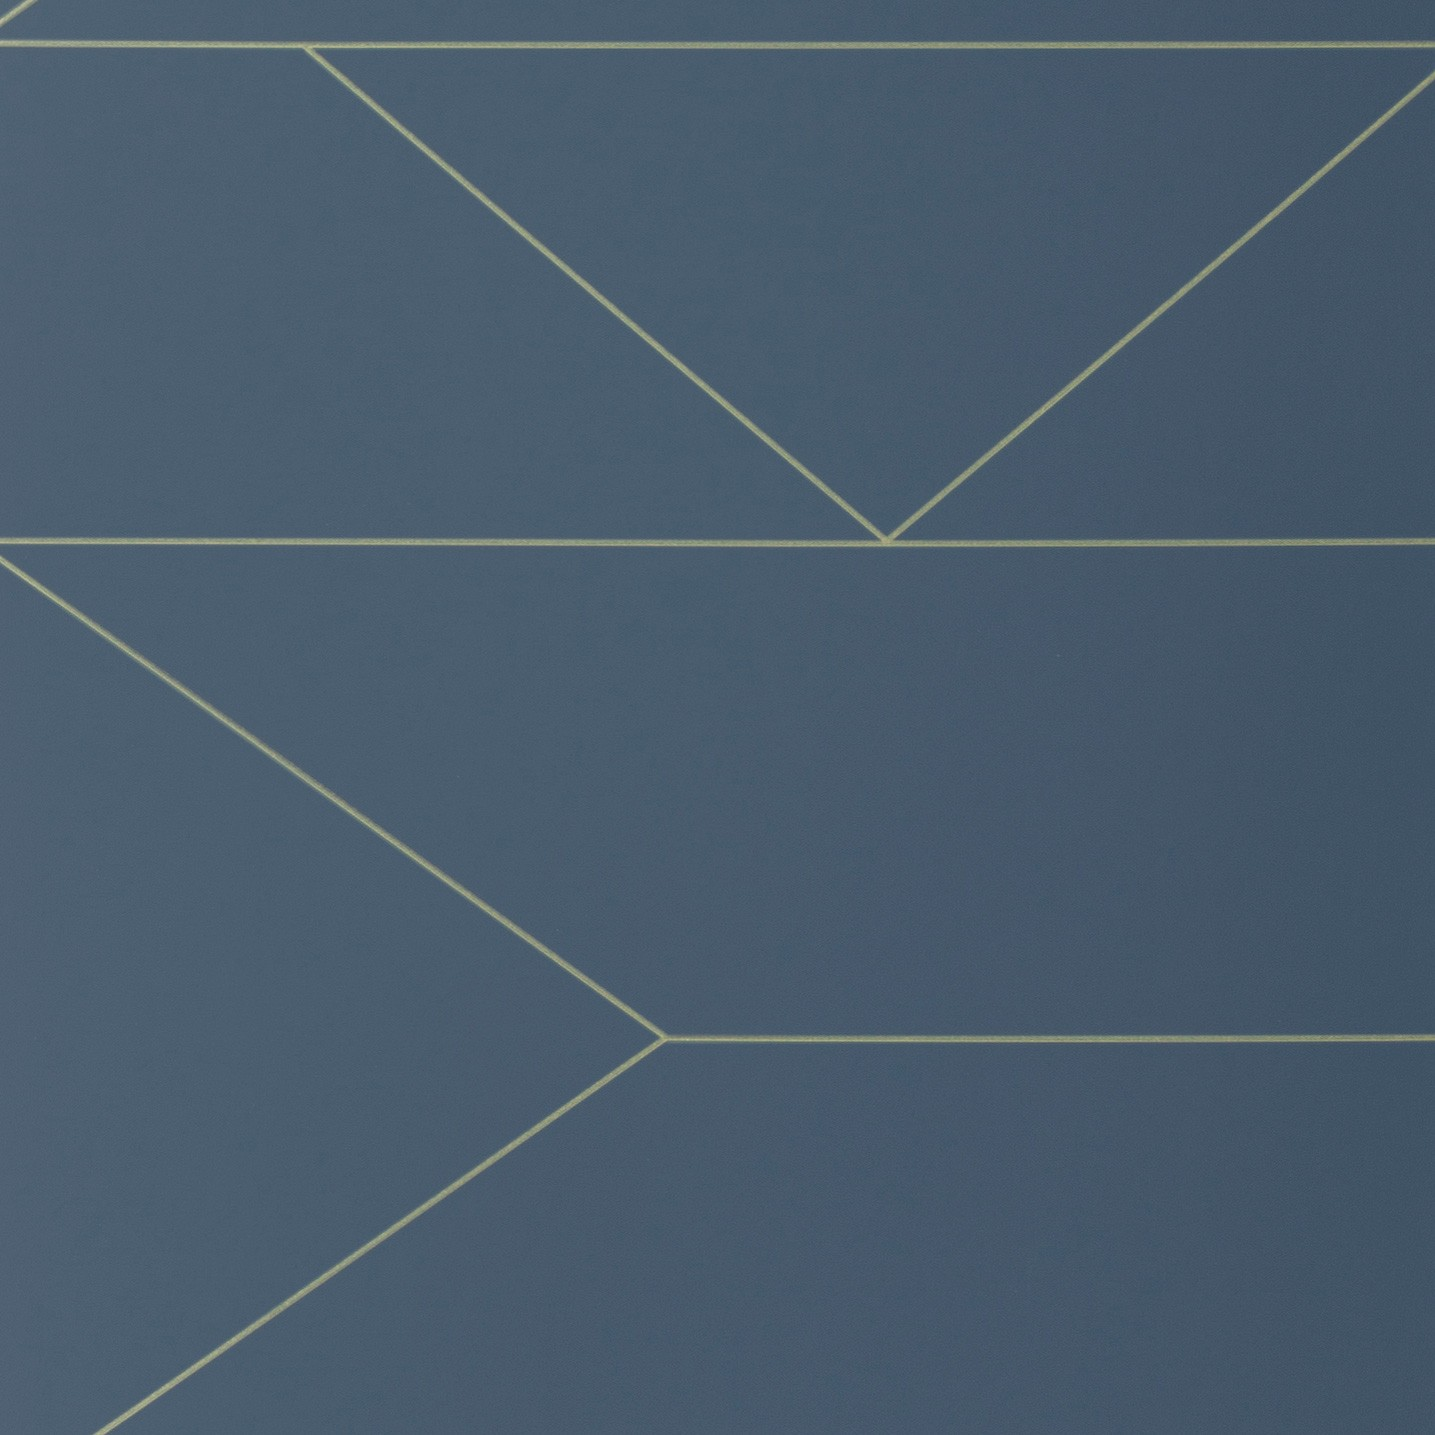 TAPETAI LINES WALLPAPER- DARK BLUE, FERMLIVING